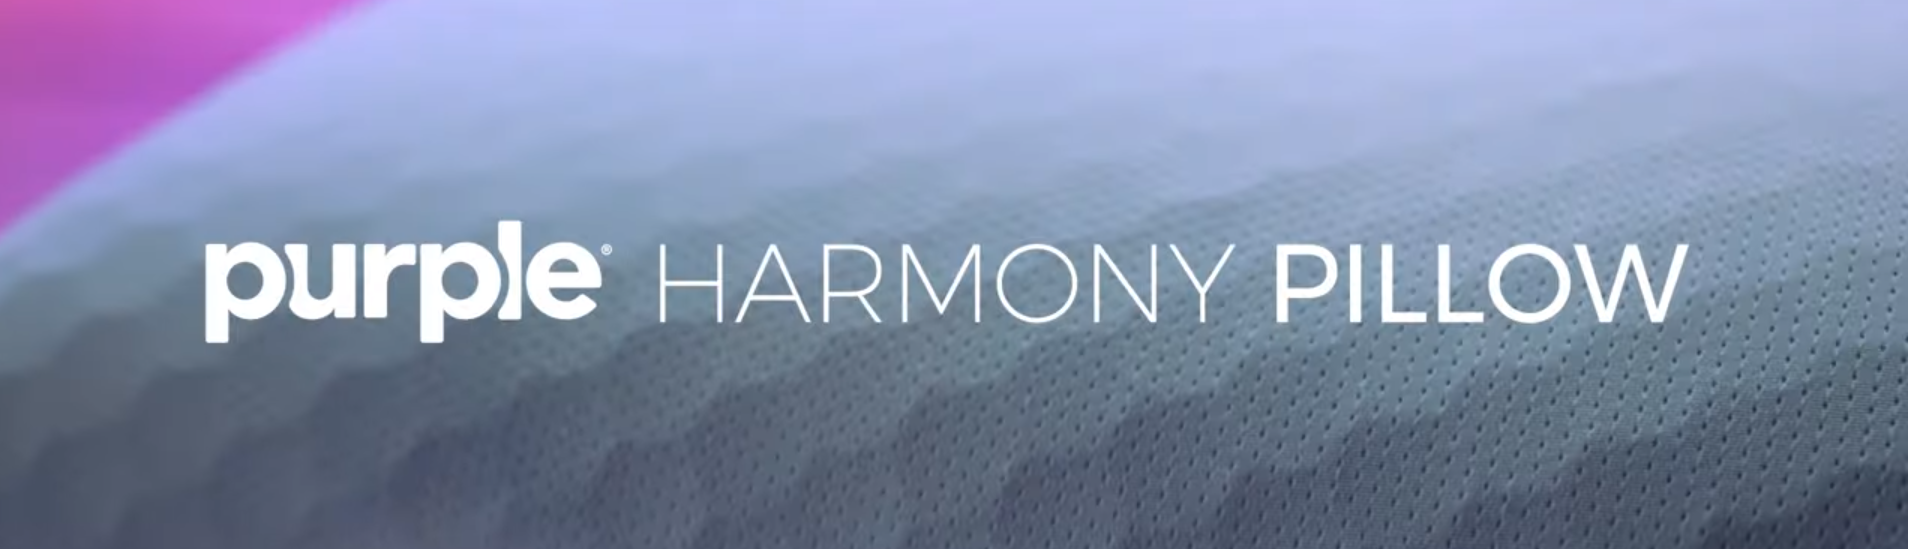 we tried the purple harmony pillow